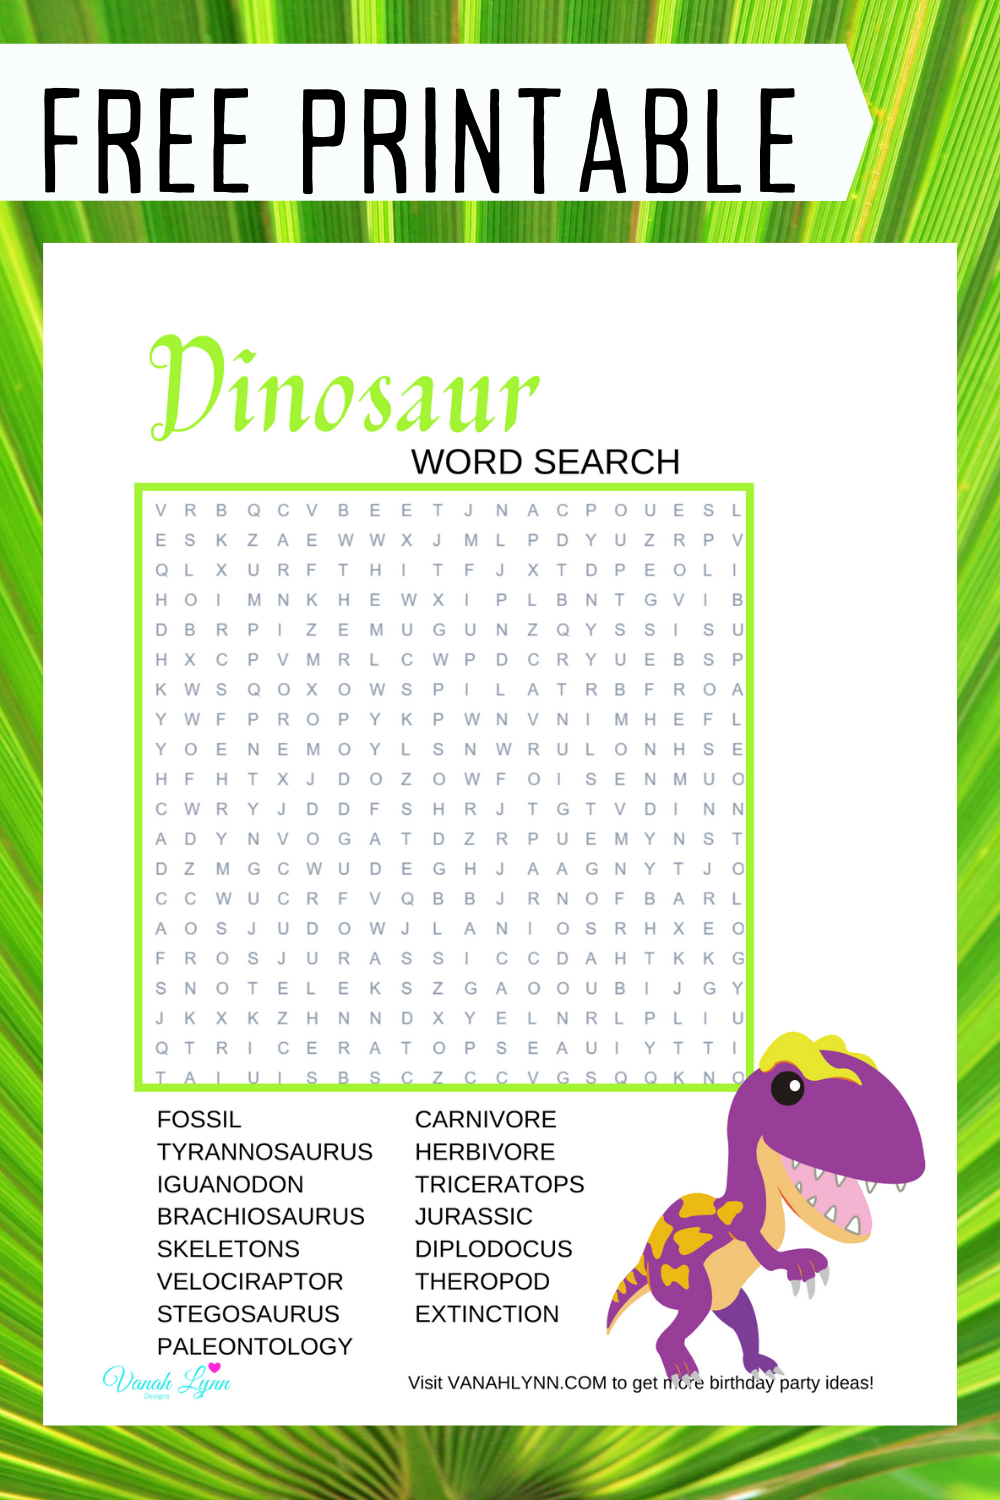 dinosaur themed word search for a kids birthday party